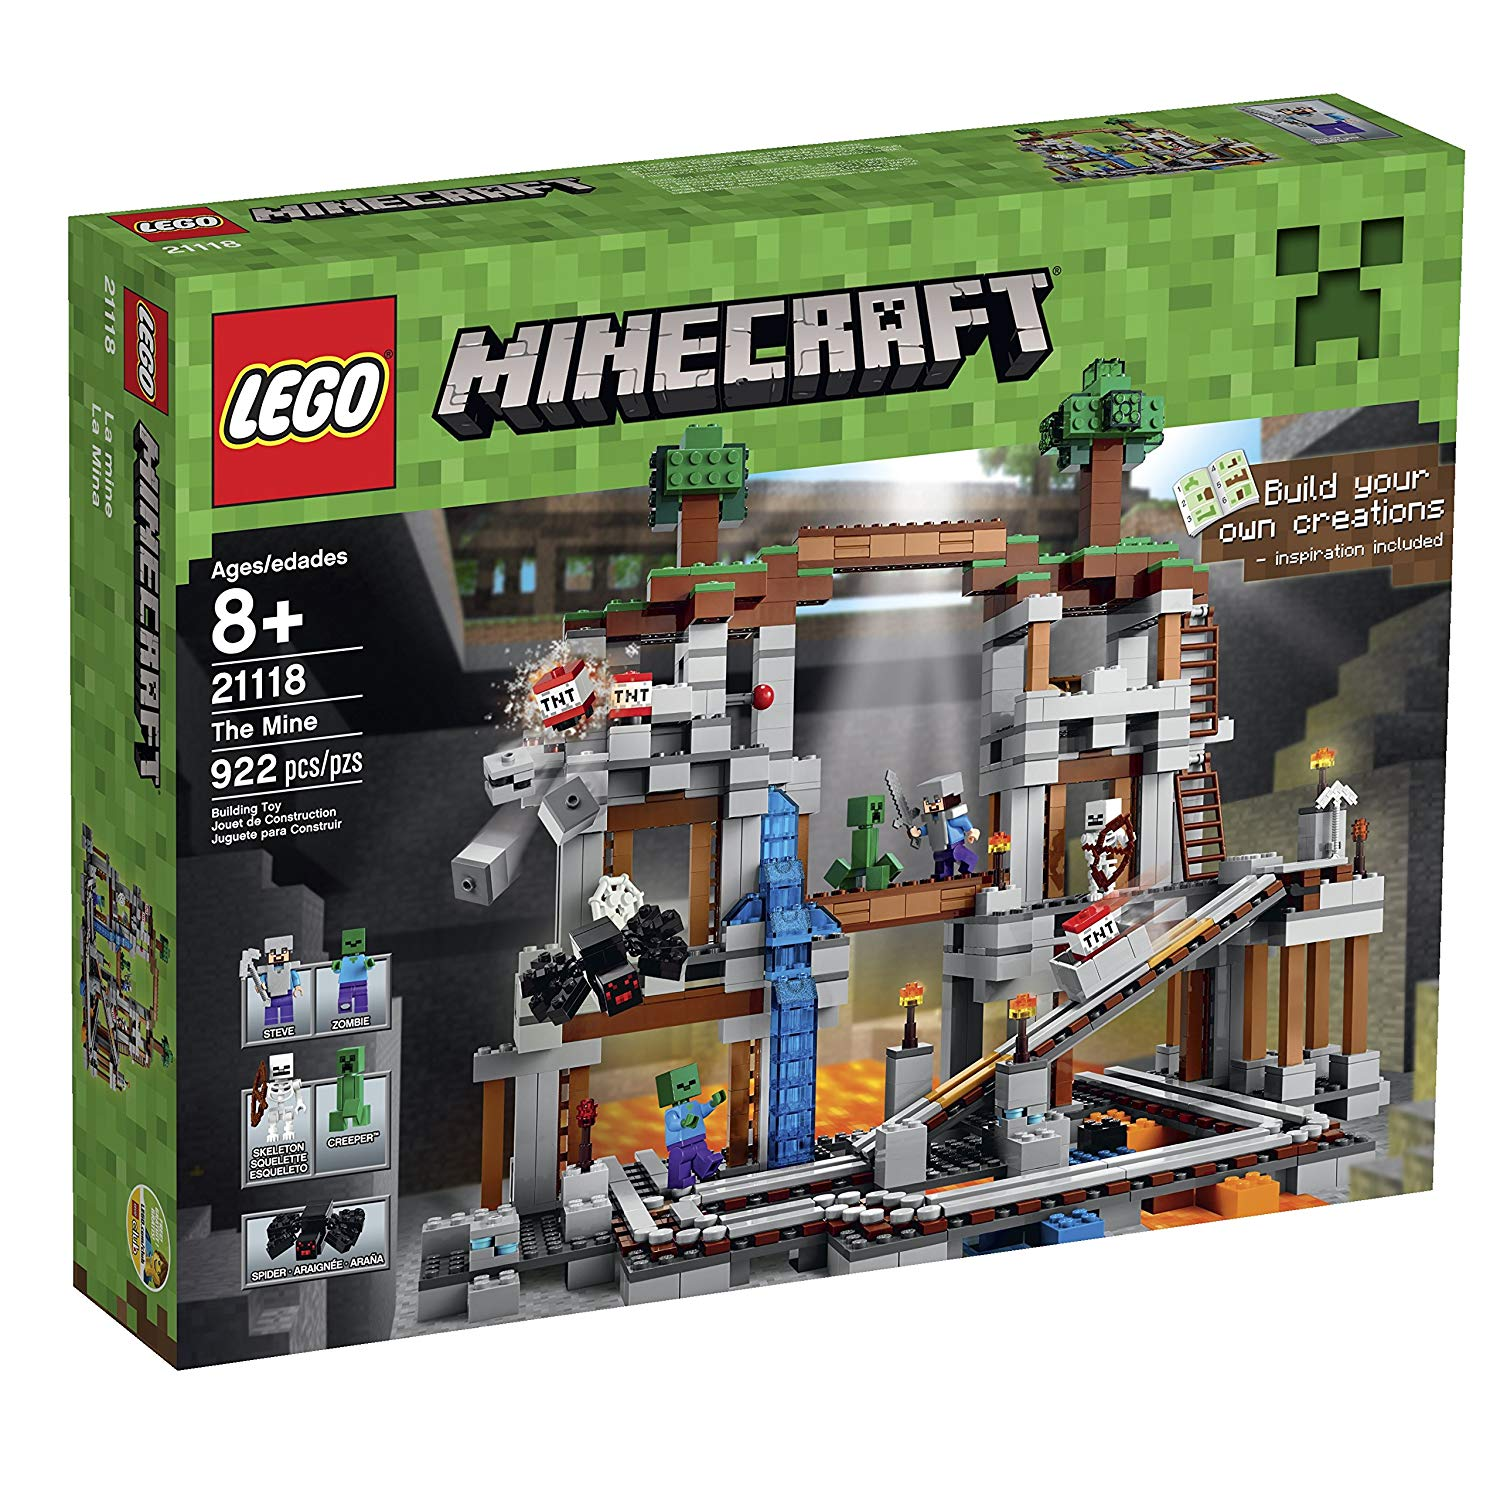 Lego ArchivesPage Minecraft Brick Of 3 Brothers The 2 NywPvm8On0